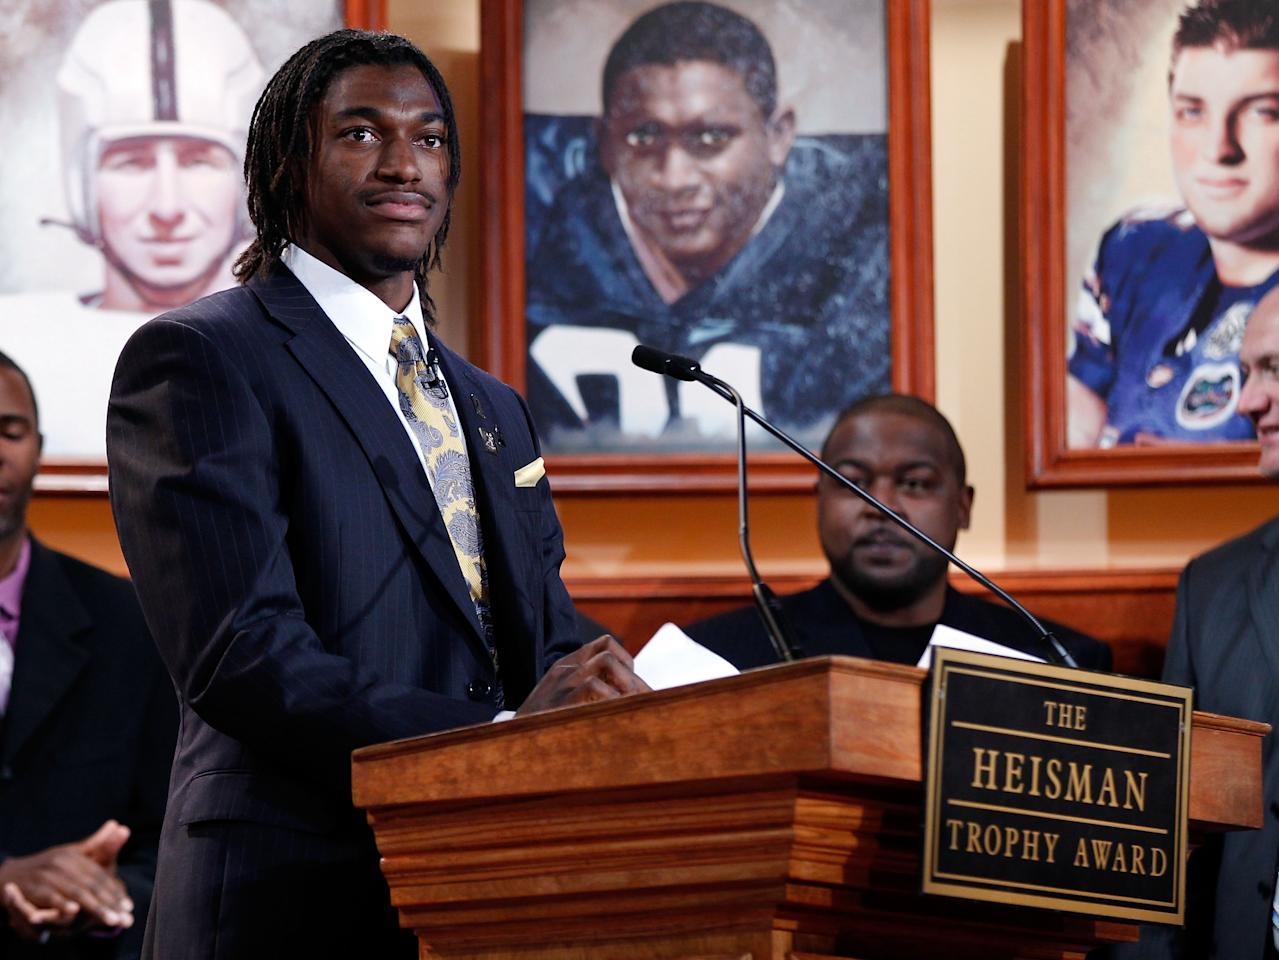 NEW YORK, NY - DECEMBER 10:  (EDITORIAL USE ONLY THROUGH DECEMBER 15, 2011, NO ARCHIVE, NO SALES) In this handout provided by the Heisman Trophy Trust. Robert Griffin III of the Baylor Bears speaks on stage after being named the 77th Heisman Memorial Trophy Award winner at the Best Buy Theater on December 10, 2011 in New York City.  (Photo by Kelly Kline/Heisman Trophy Trust via Getty Images)